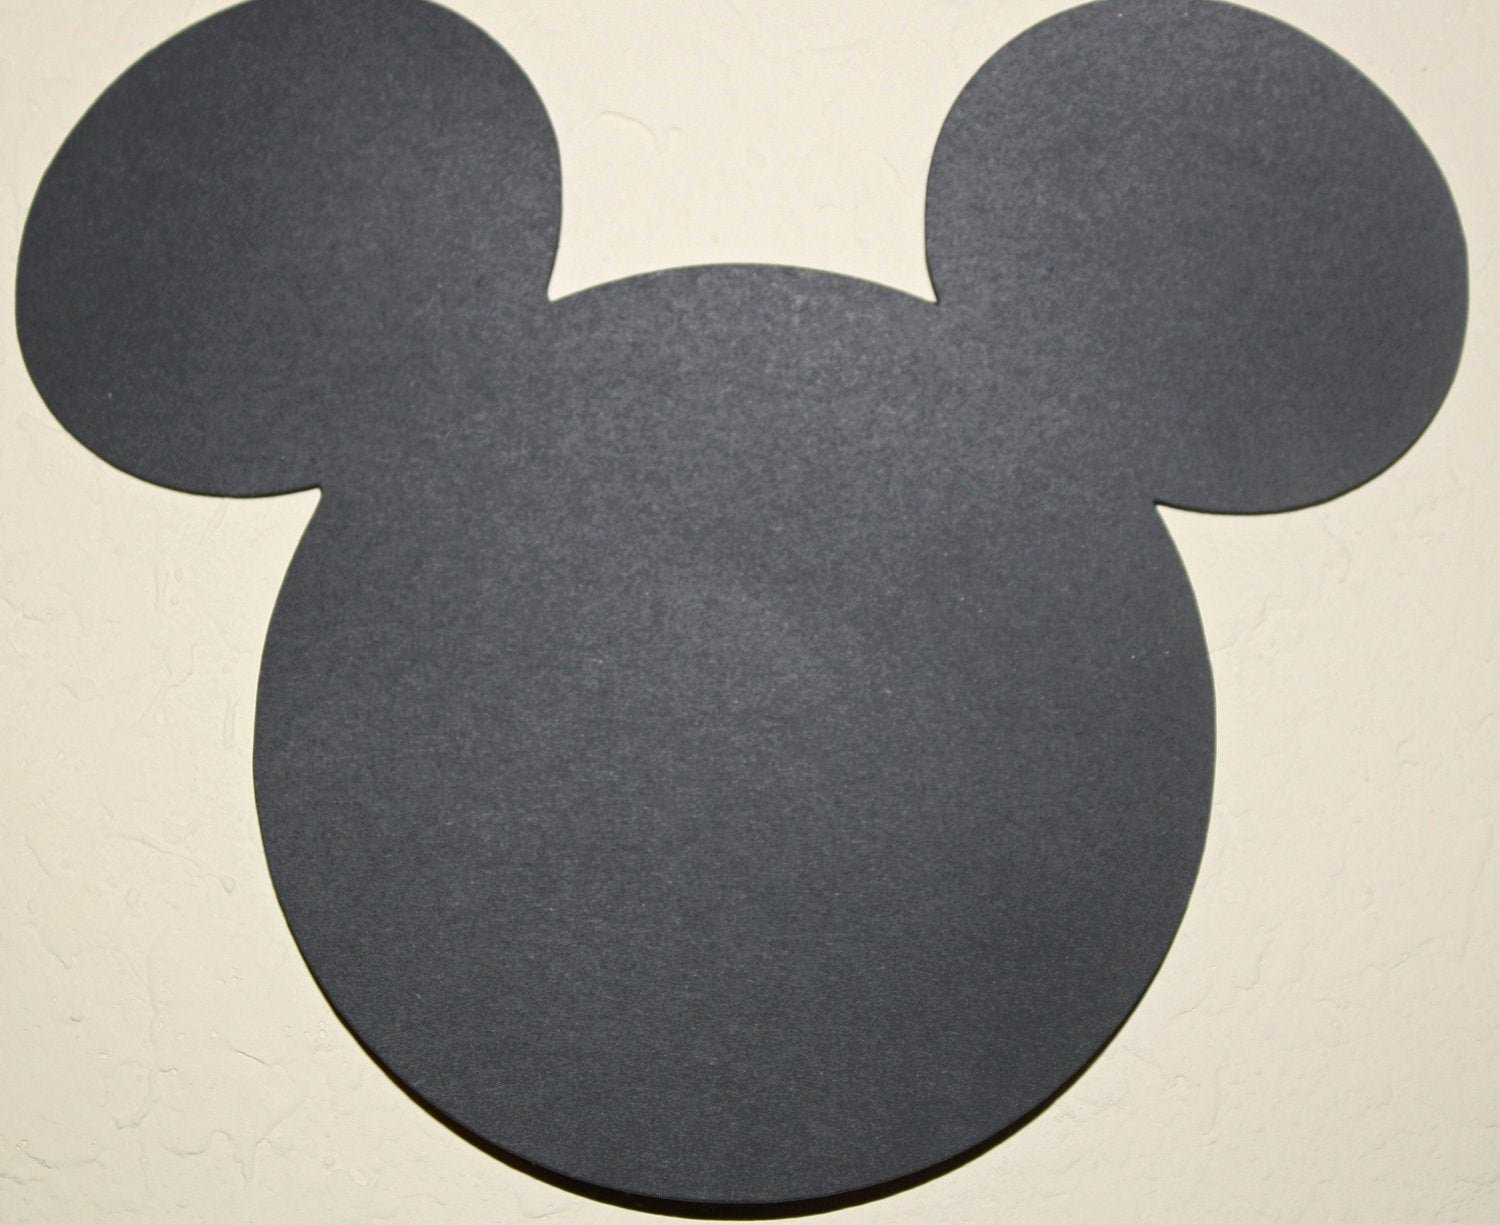 Mouse Cut Out Best Of Small Mickey Mouse Head Die Cut Out 3 3 4inches Perfect for